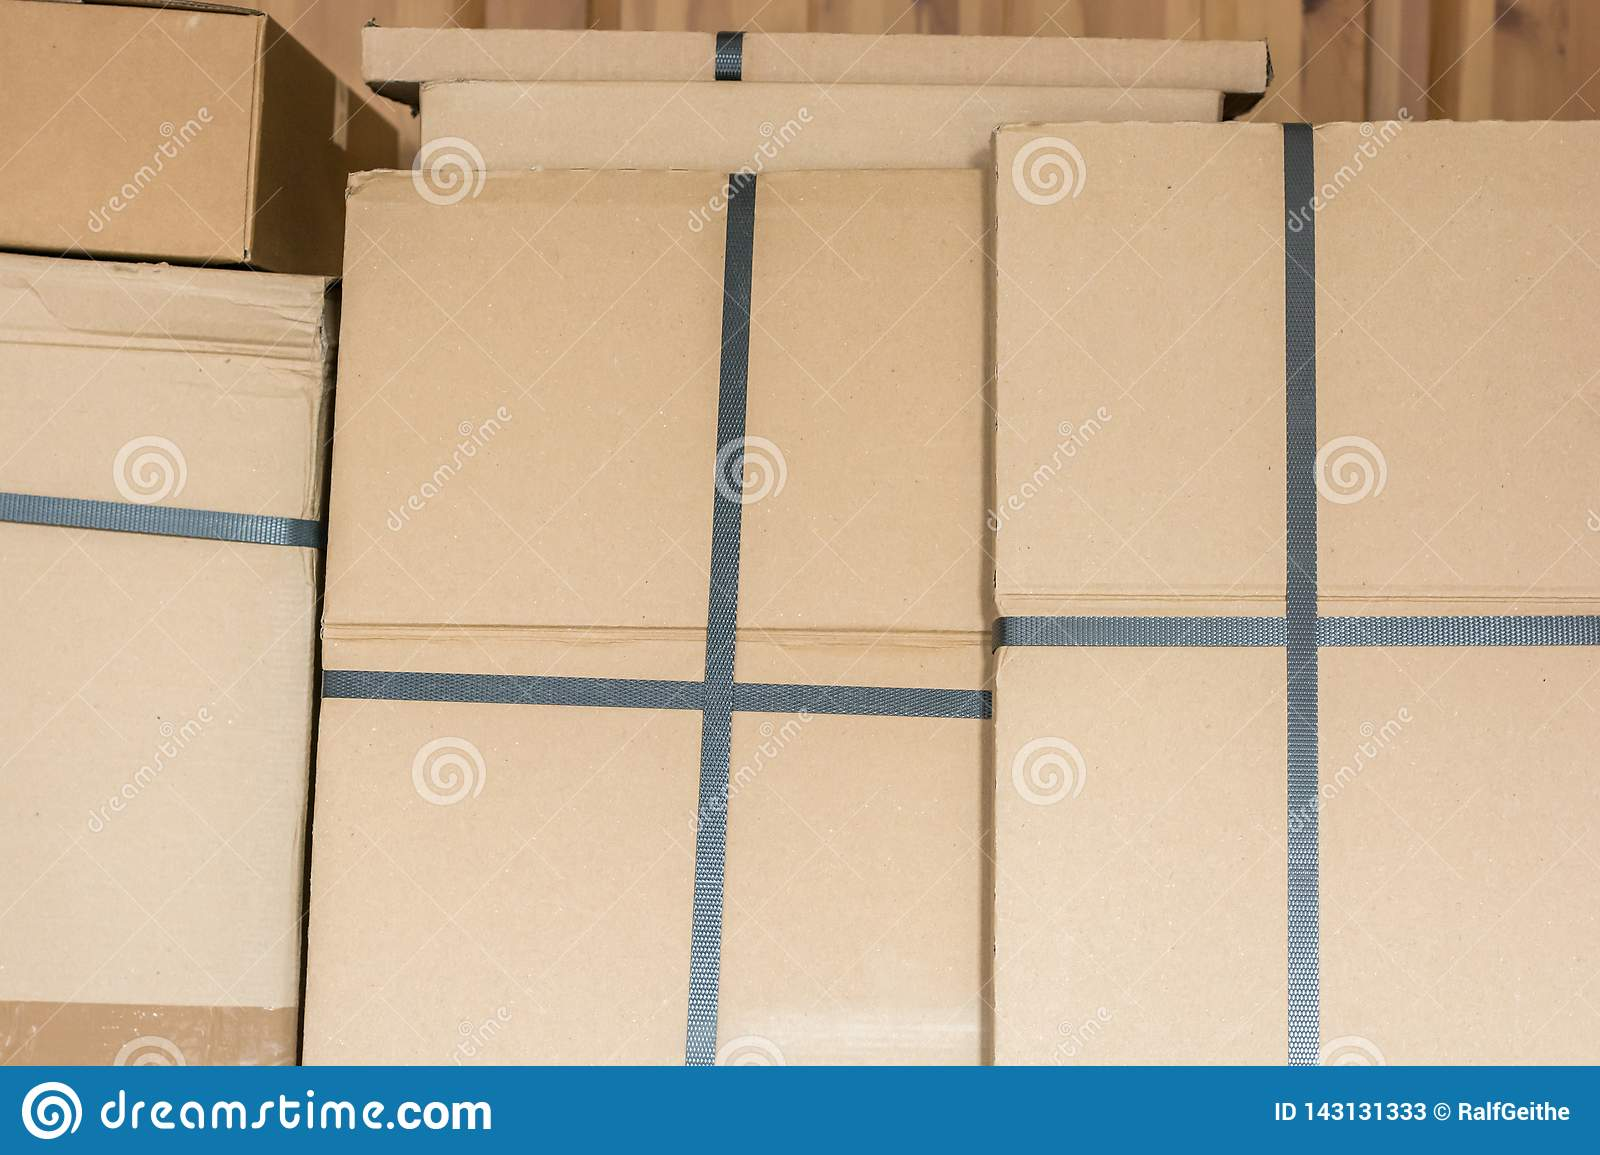 Stacked cardboard boxes in a warehouse